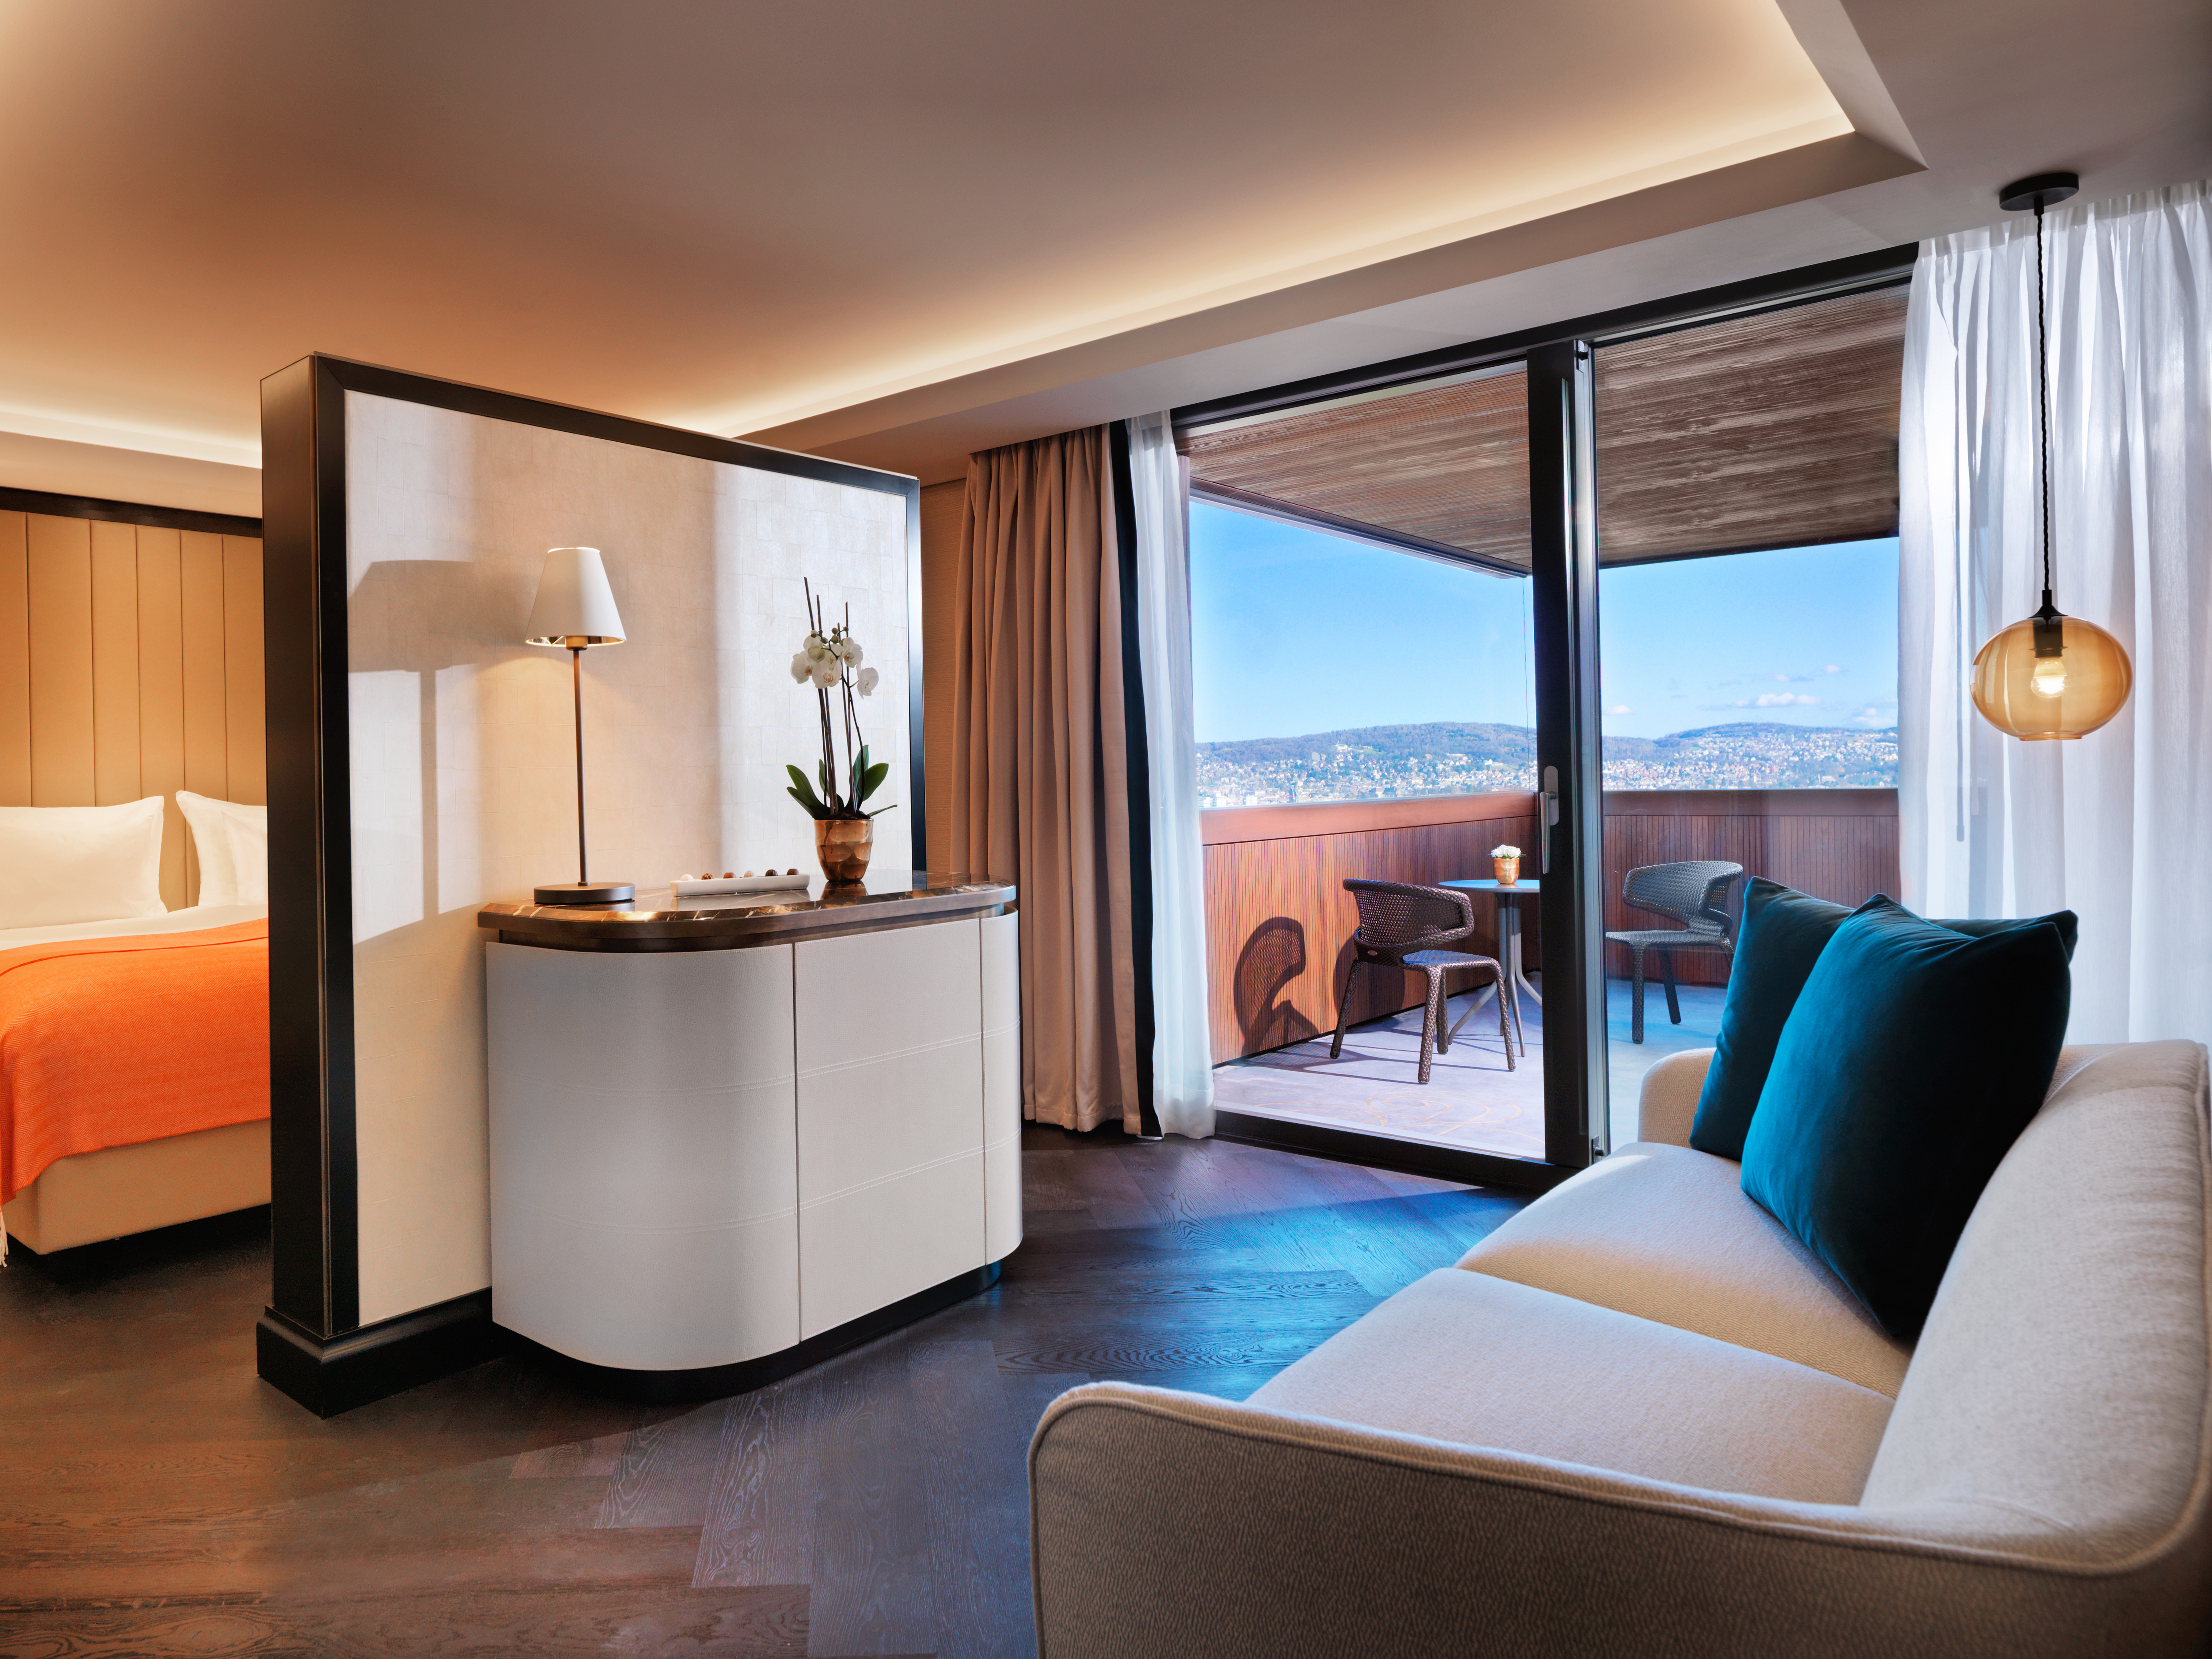 Rooms suites at atlantis by giardino in zurich design for Room design zurich